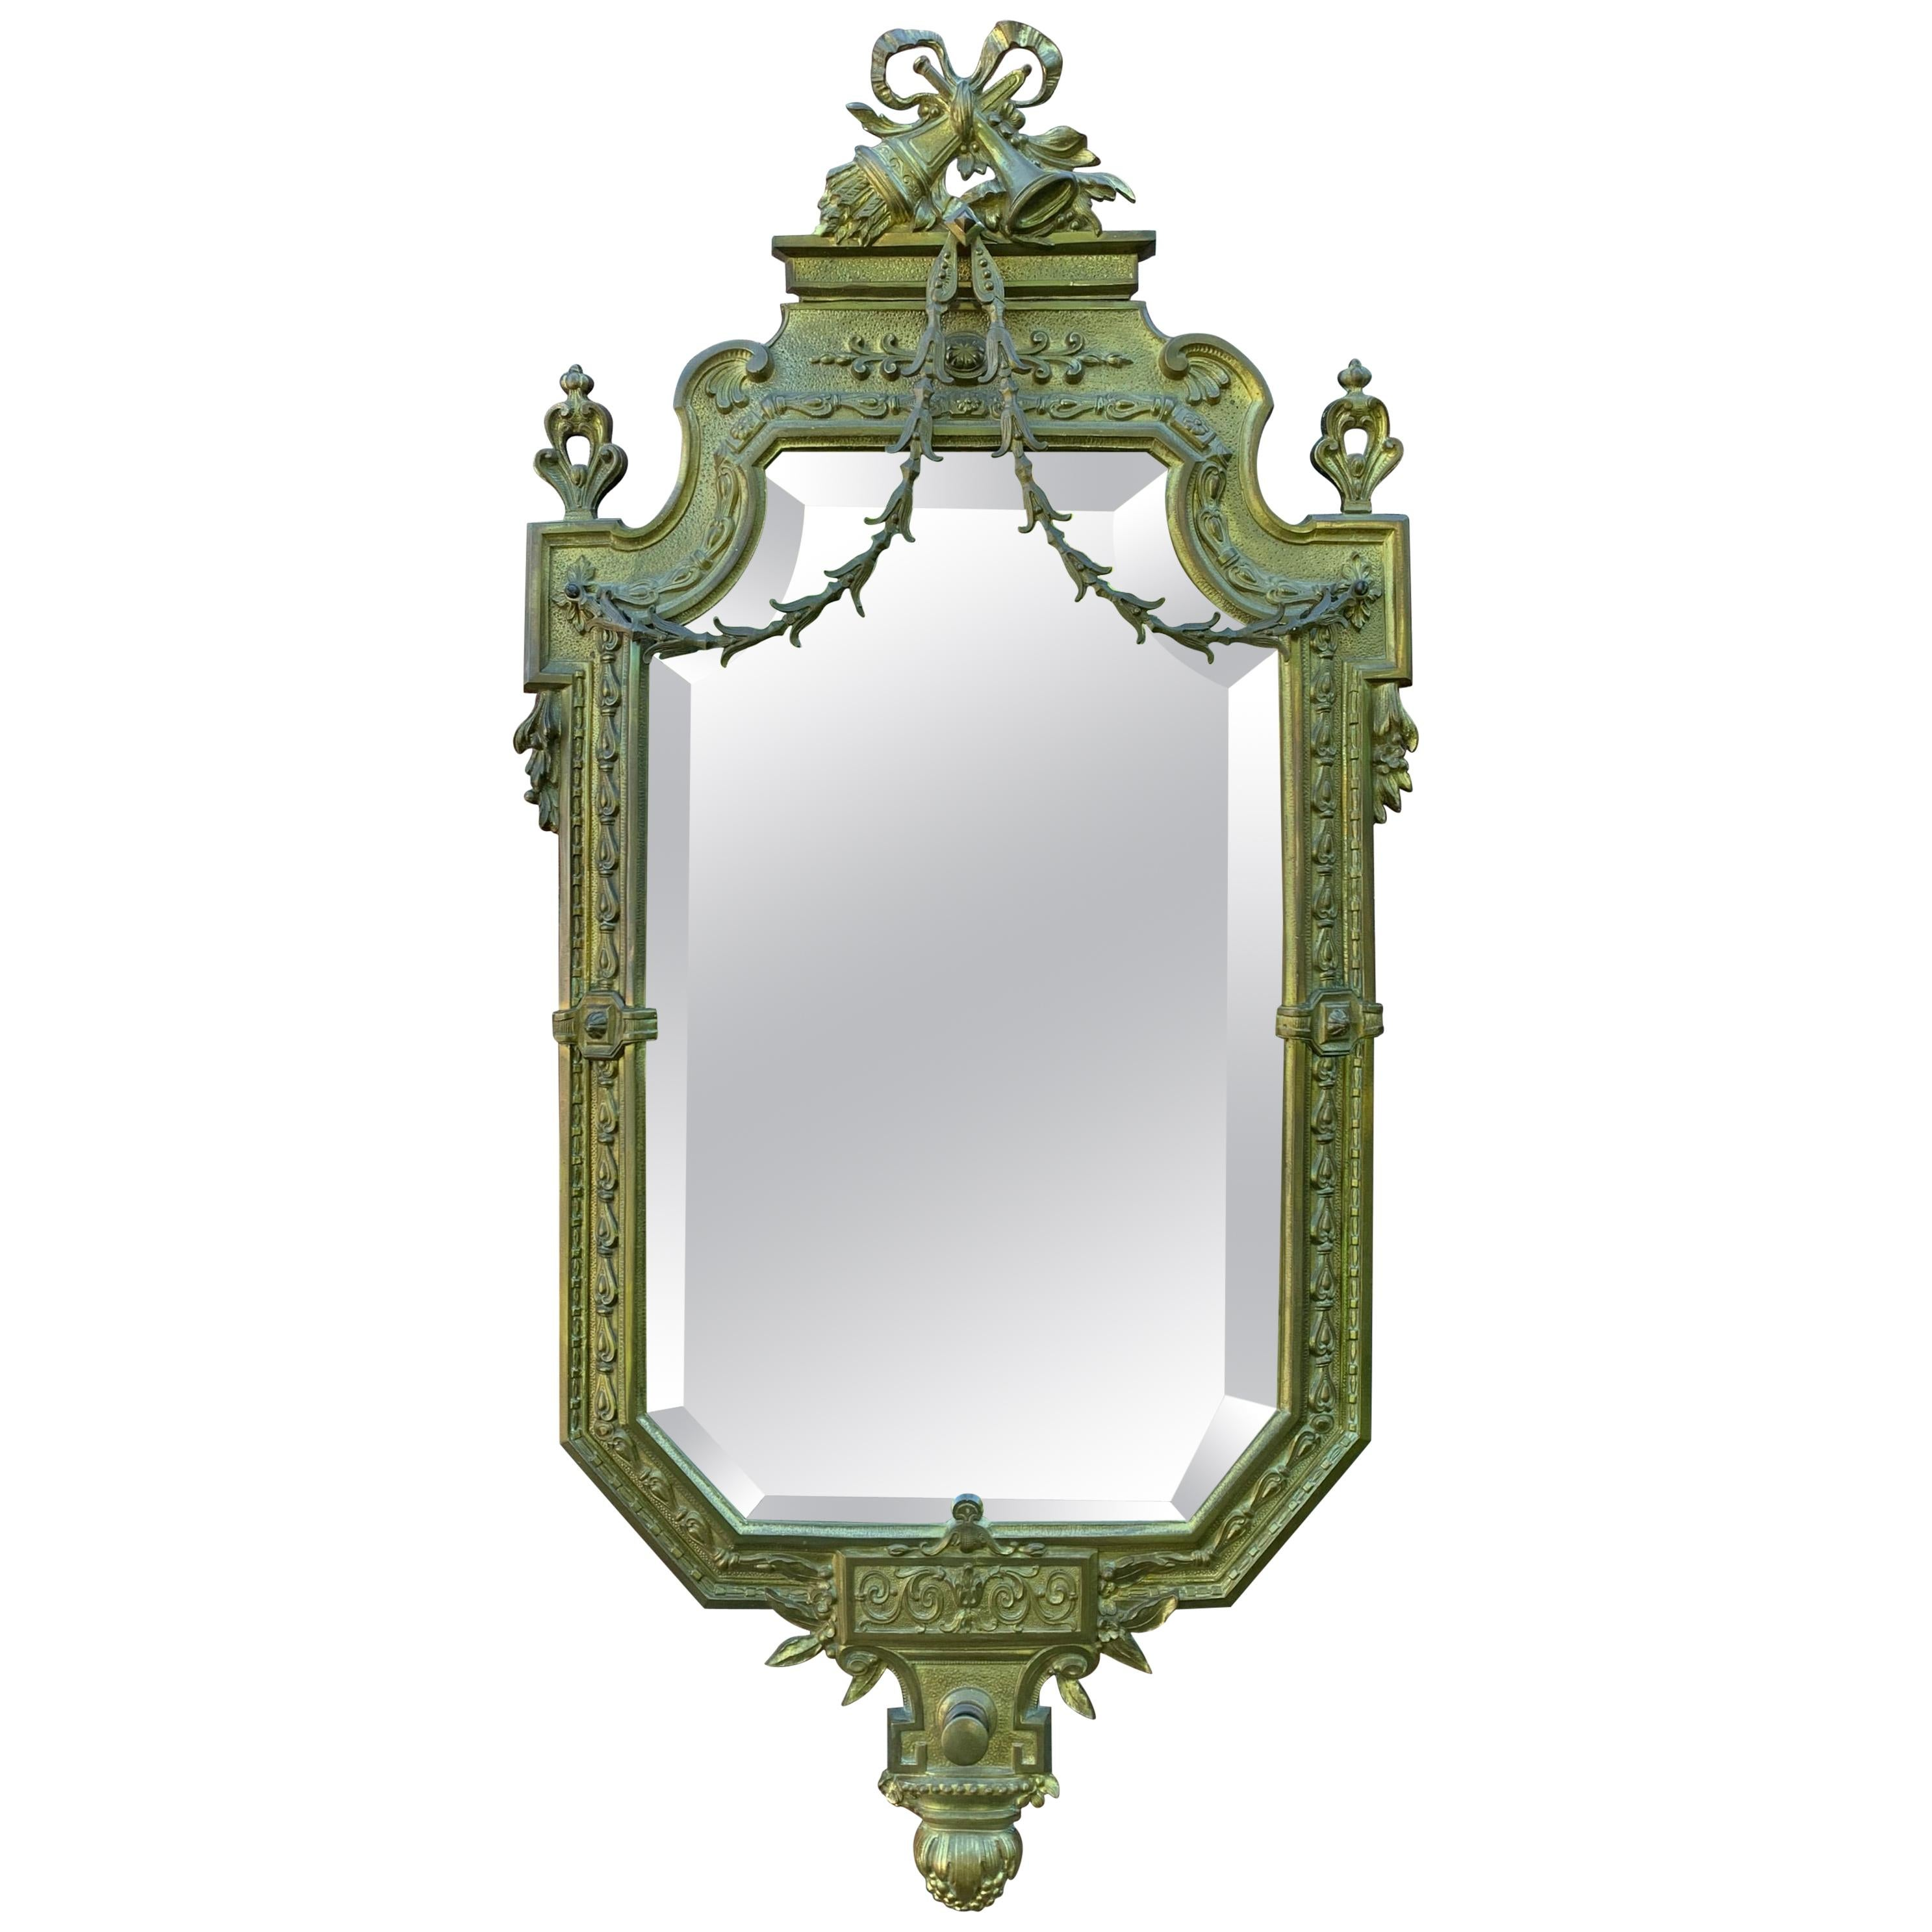 Antique French Louis XVI Handcrafted and Finely Detailed Gilt Bronze Wall Mirror